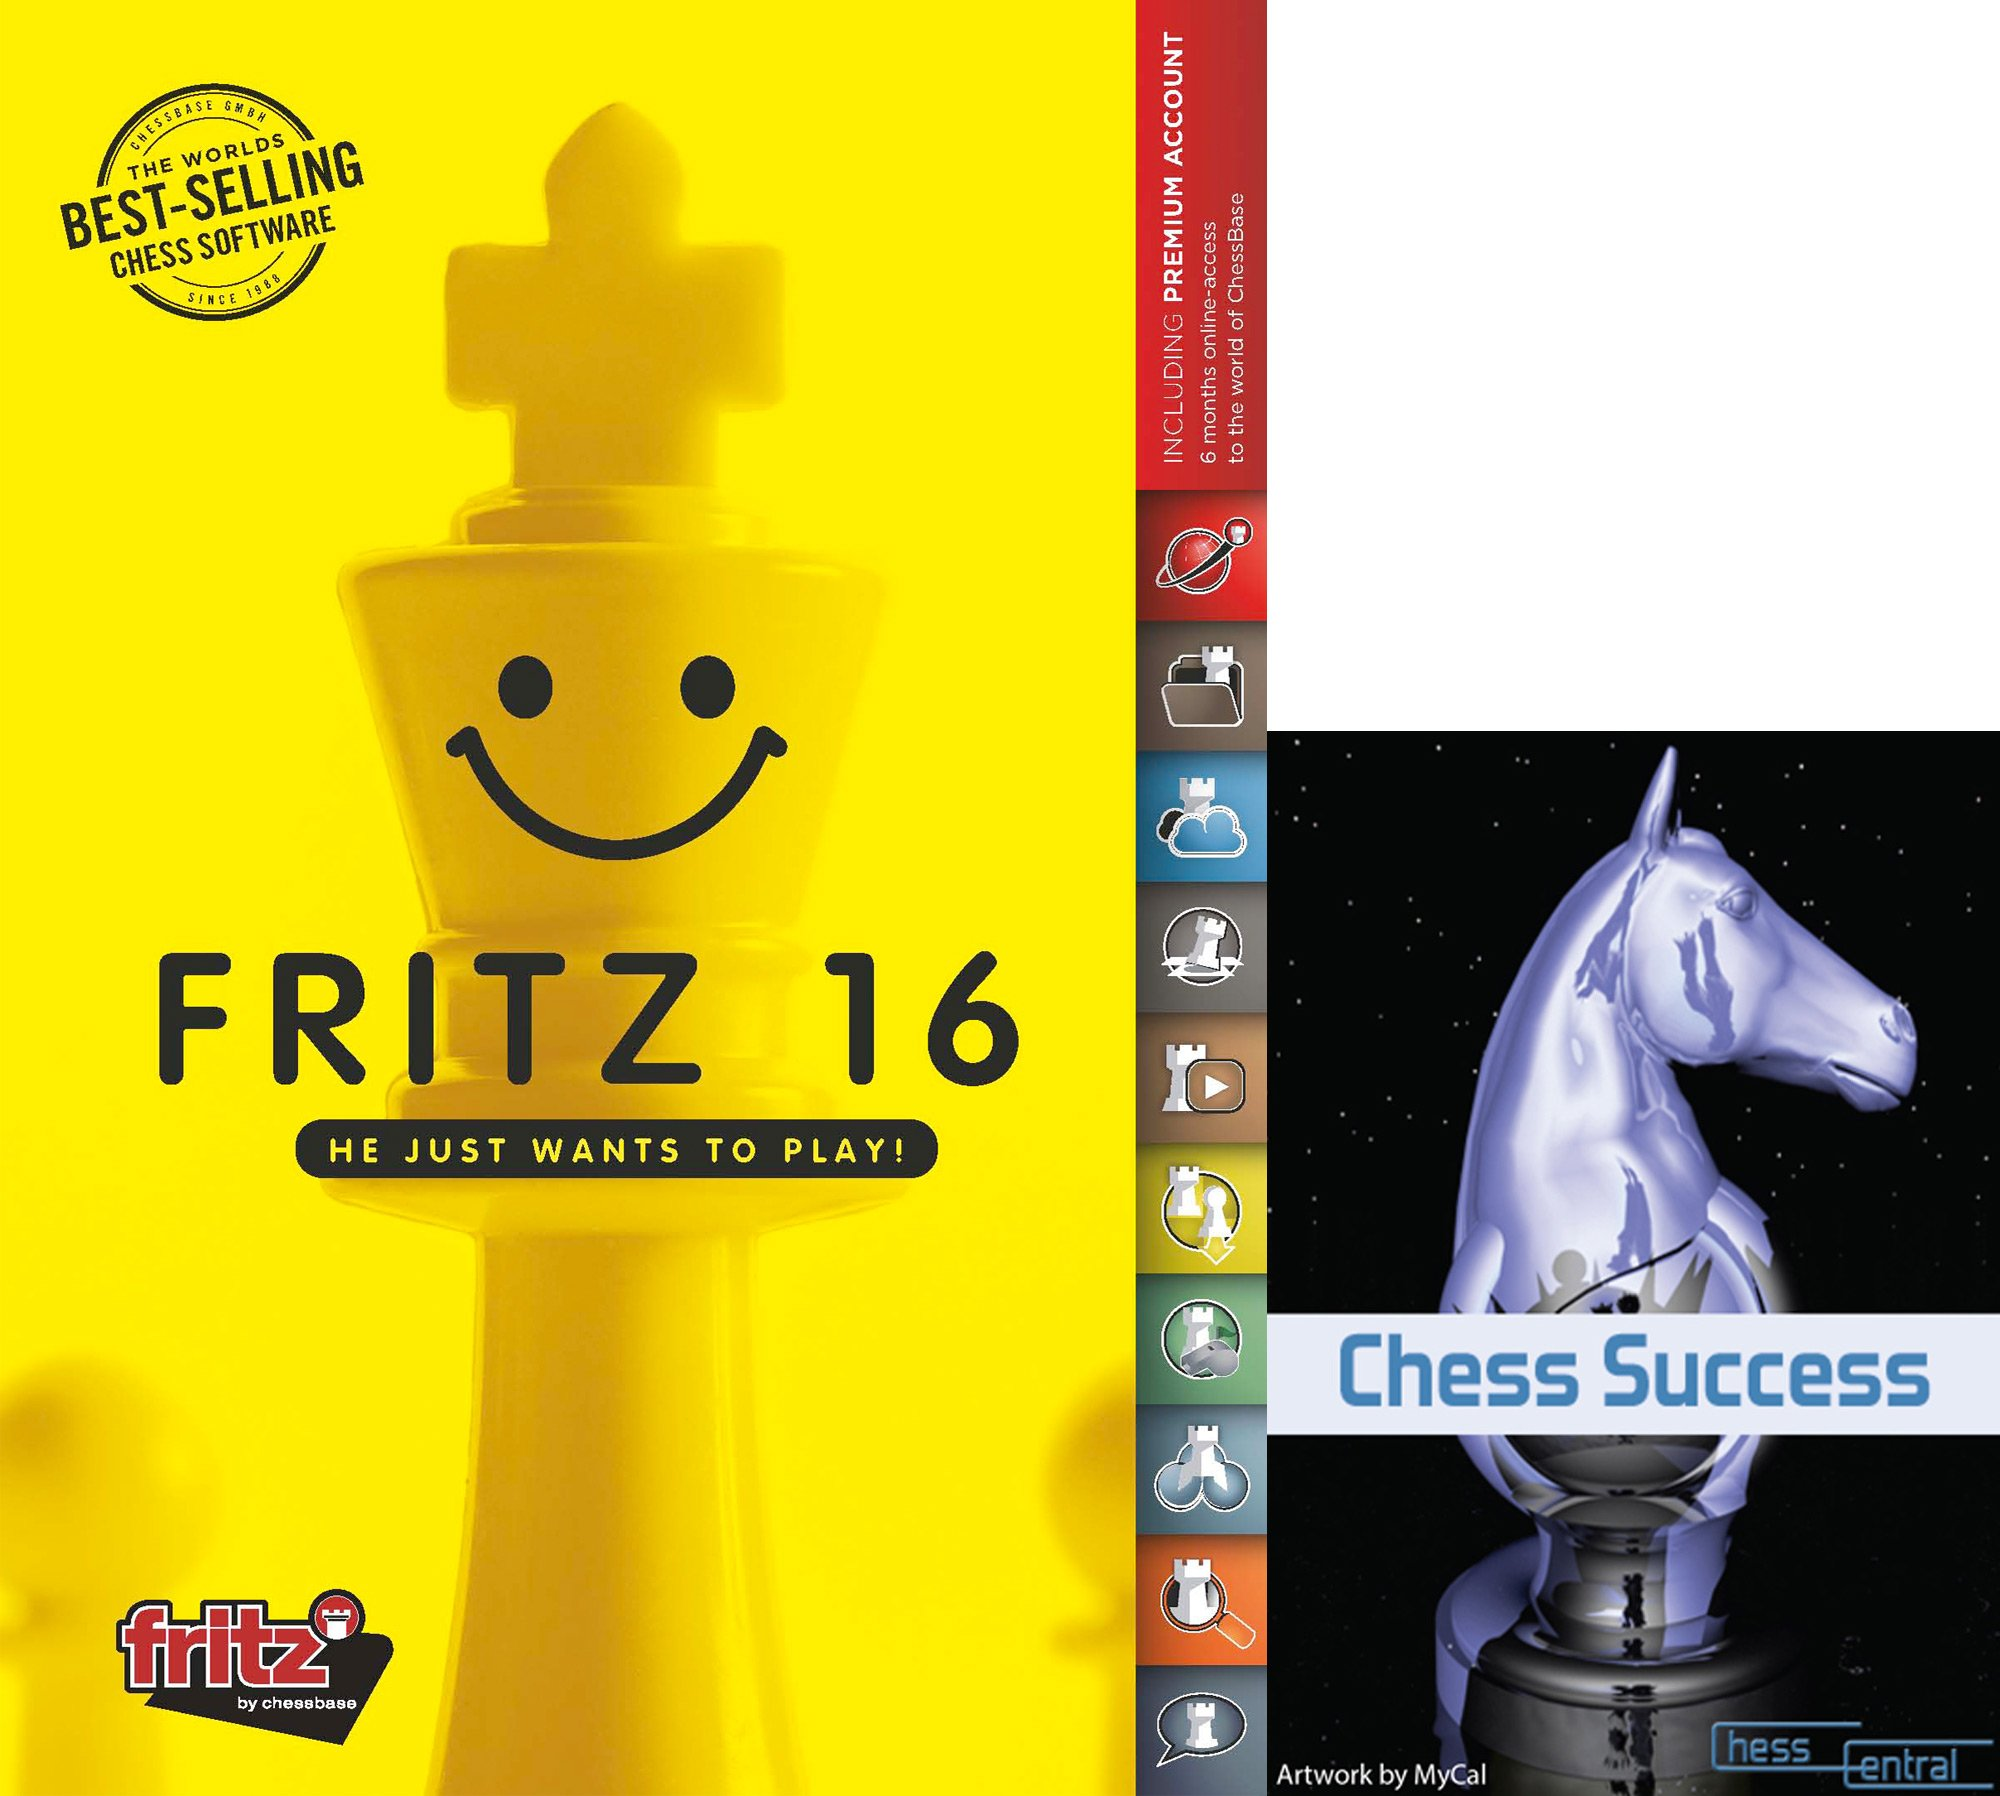 Fritz 16 Chess Playing Software Game Program Bundled with Chess Success Training Software